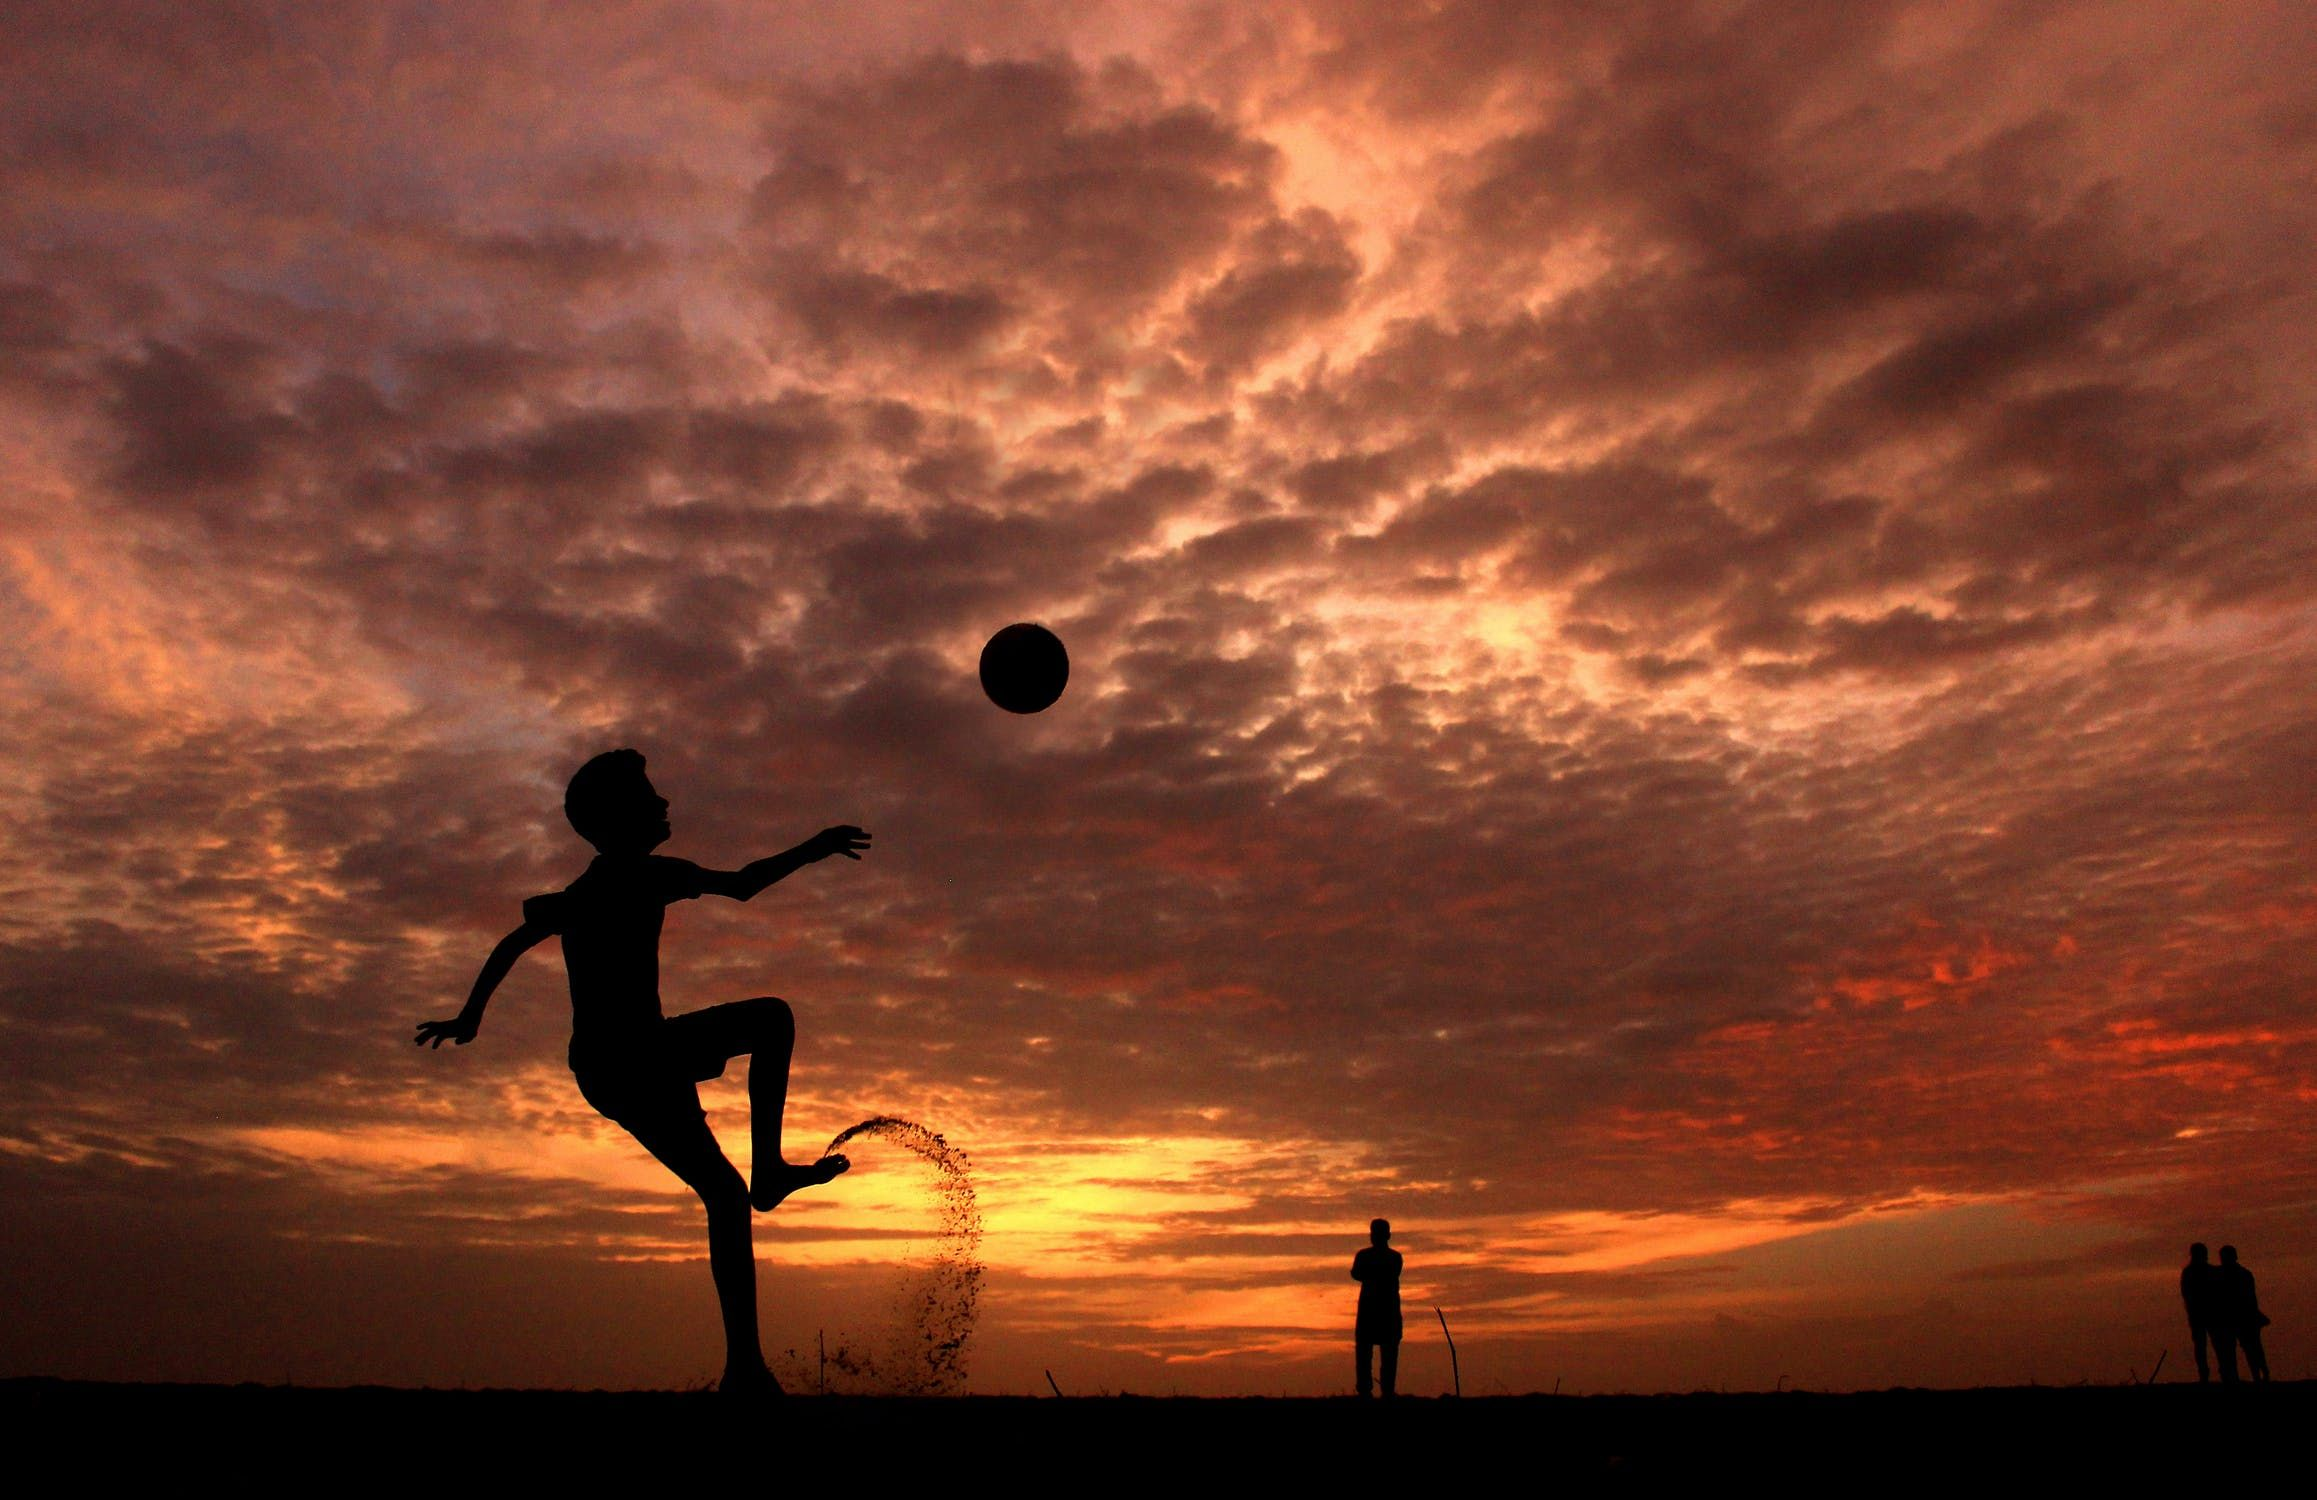 A young boy playing around with a ball under the sunset